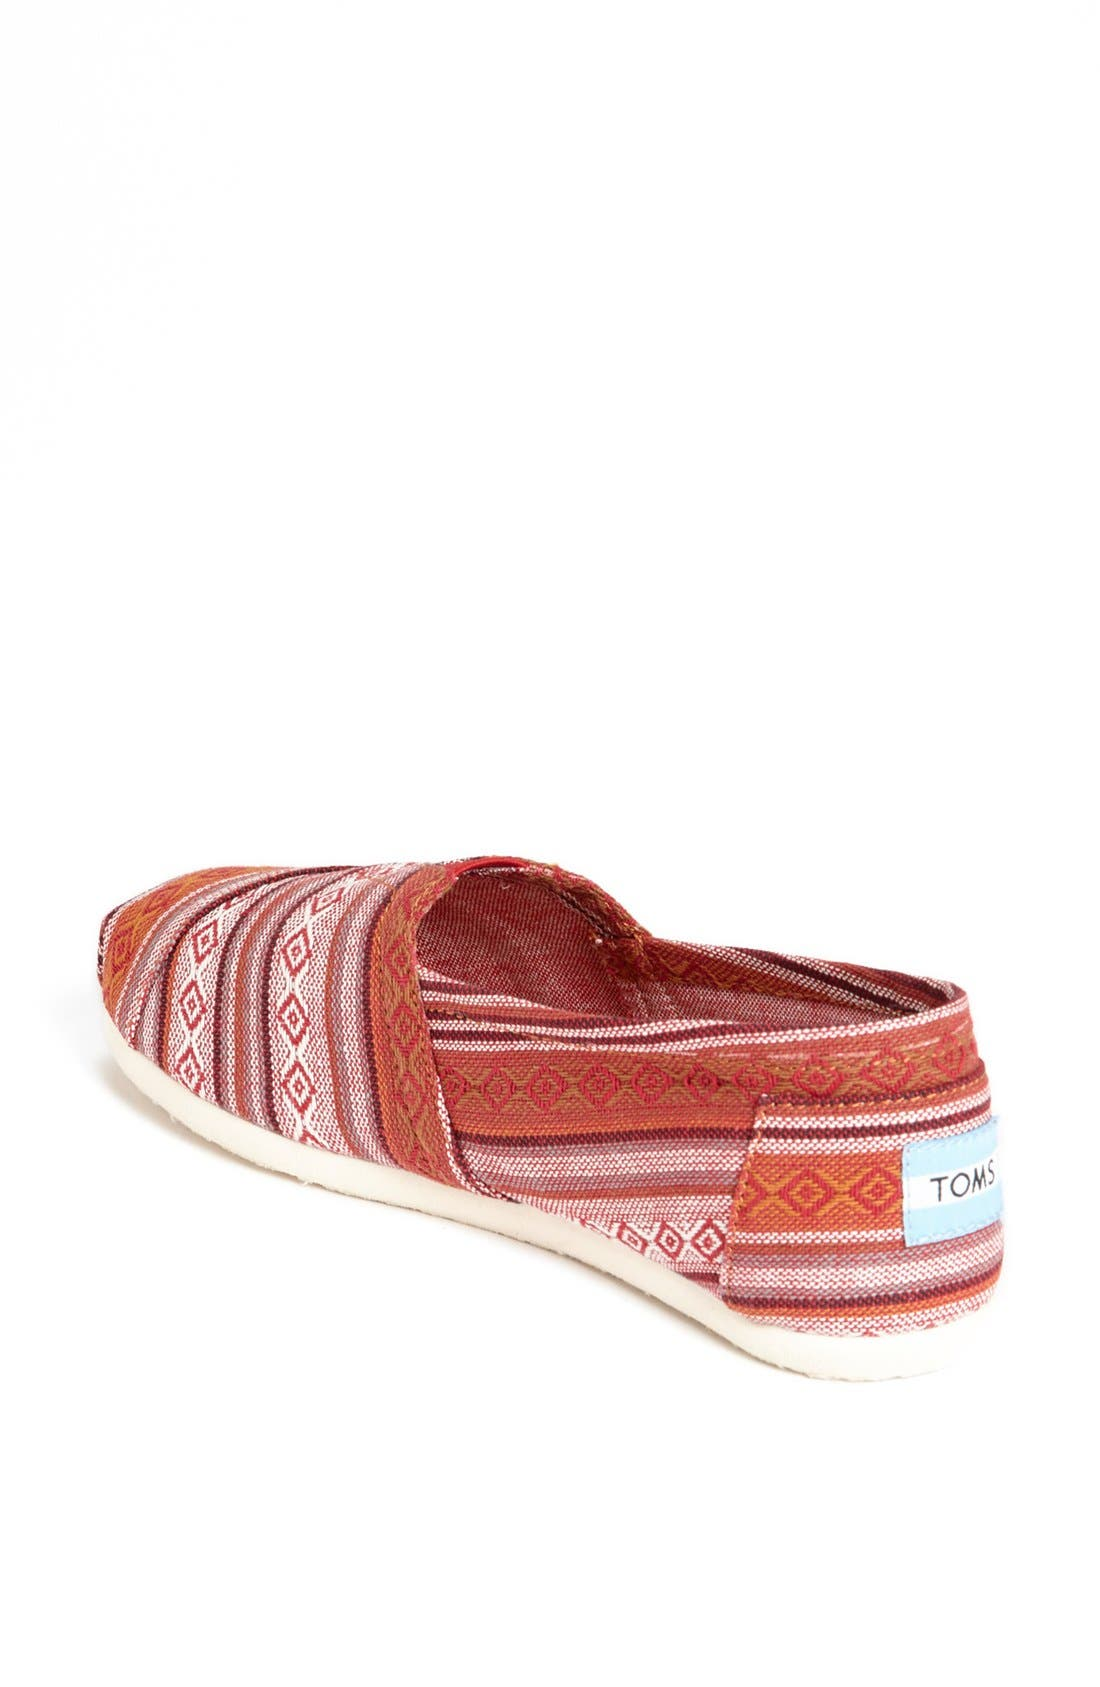 Alternate Image 2  - TOMS 'Seasonal Classic - Nepal' Slip-On (Women)